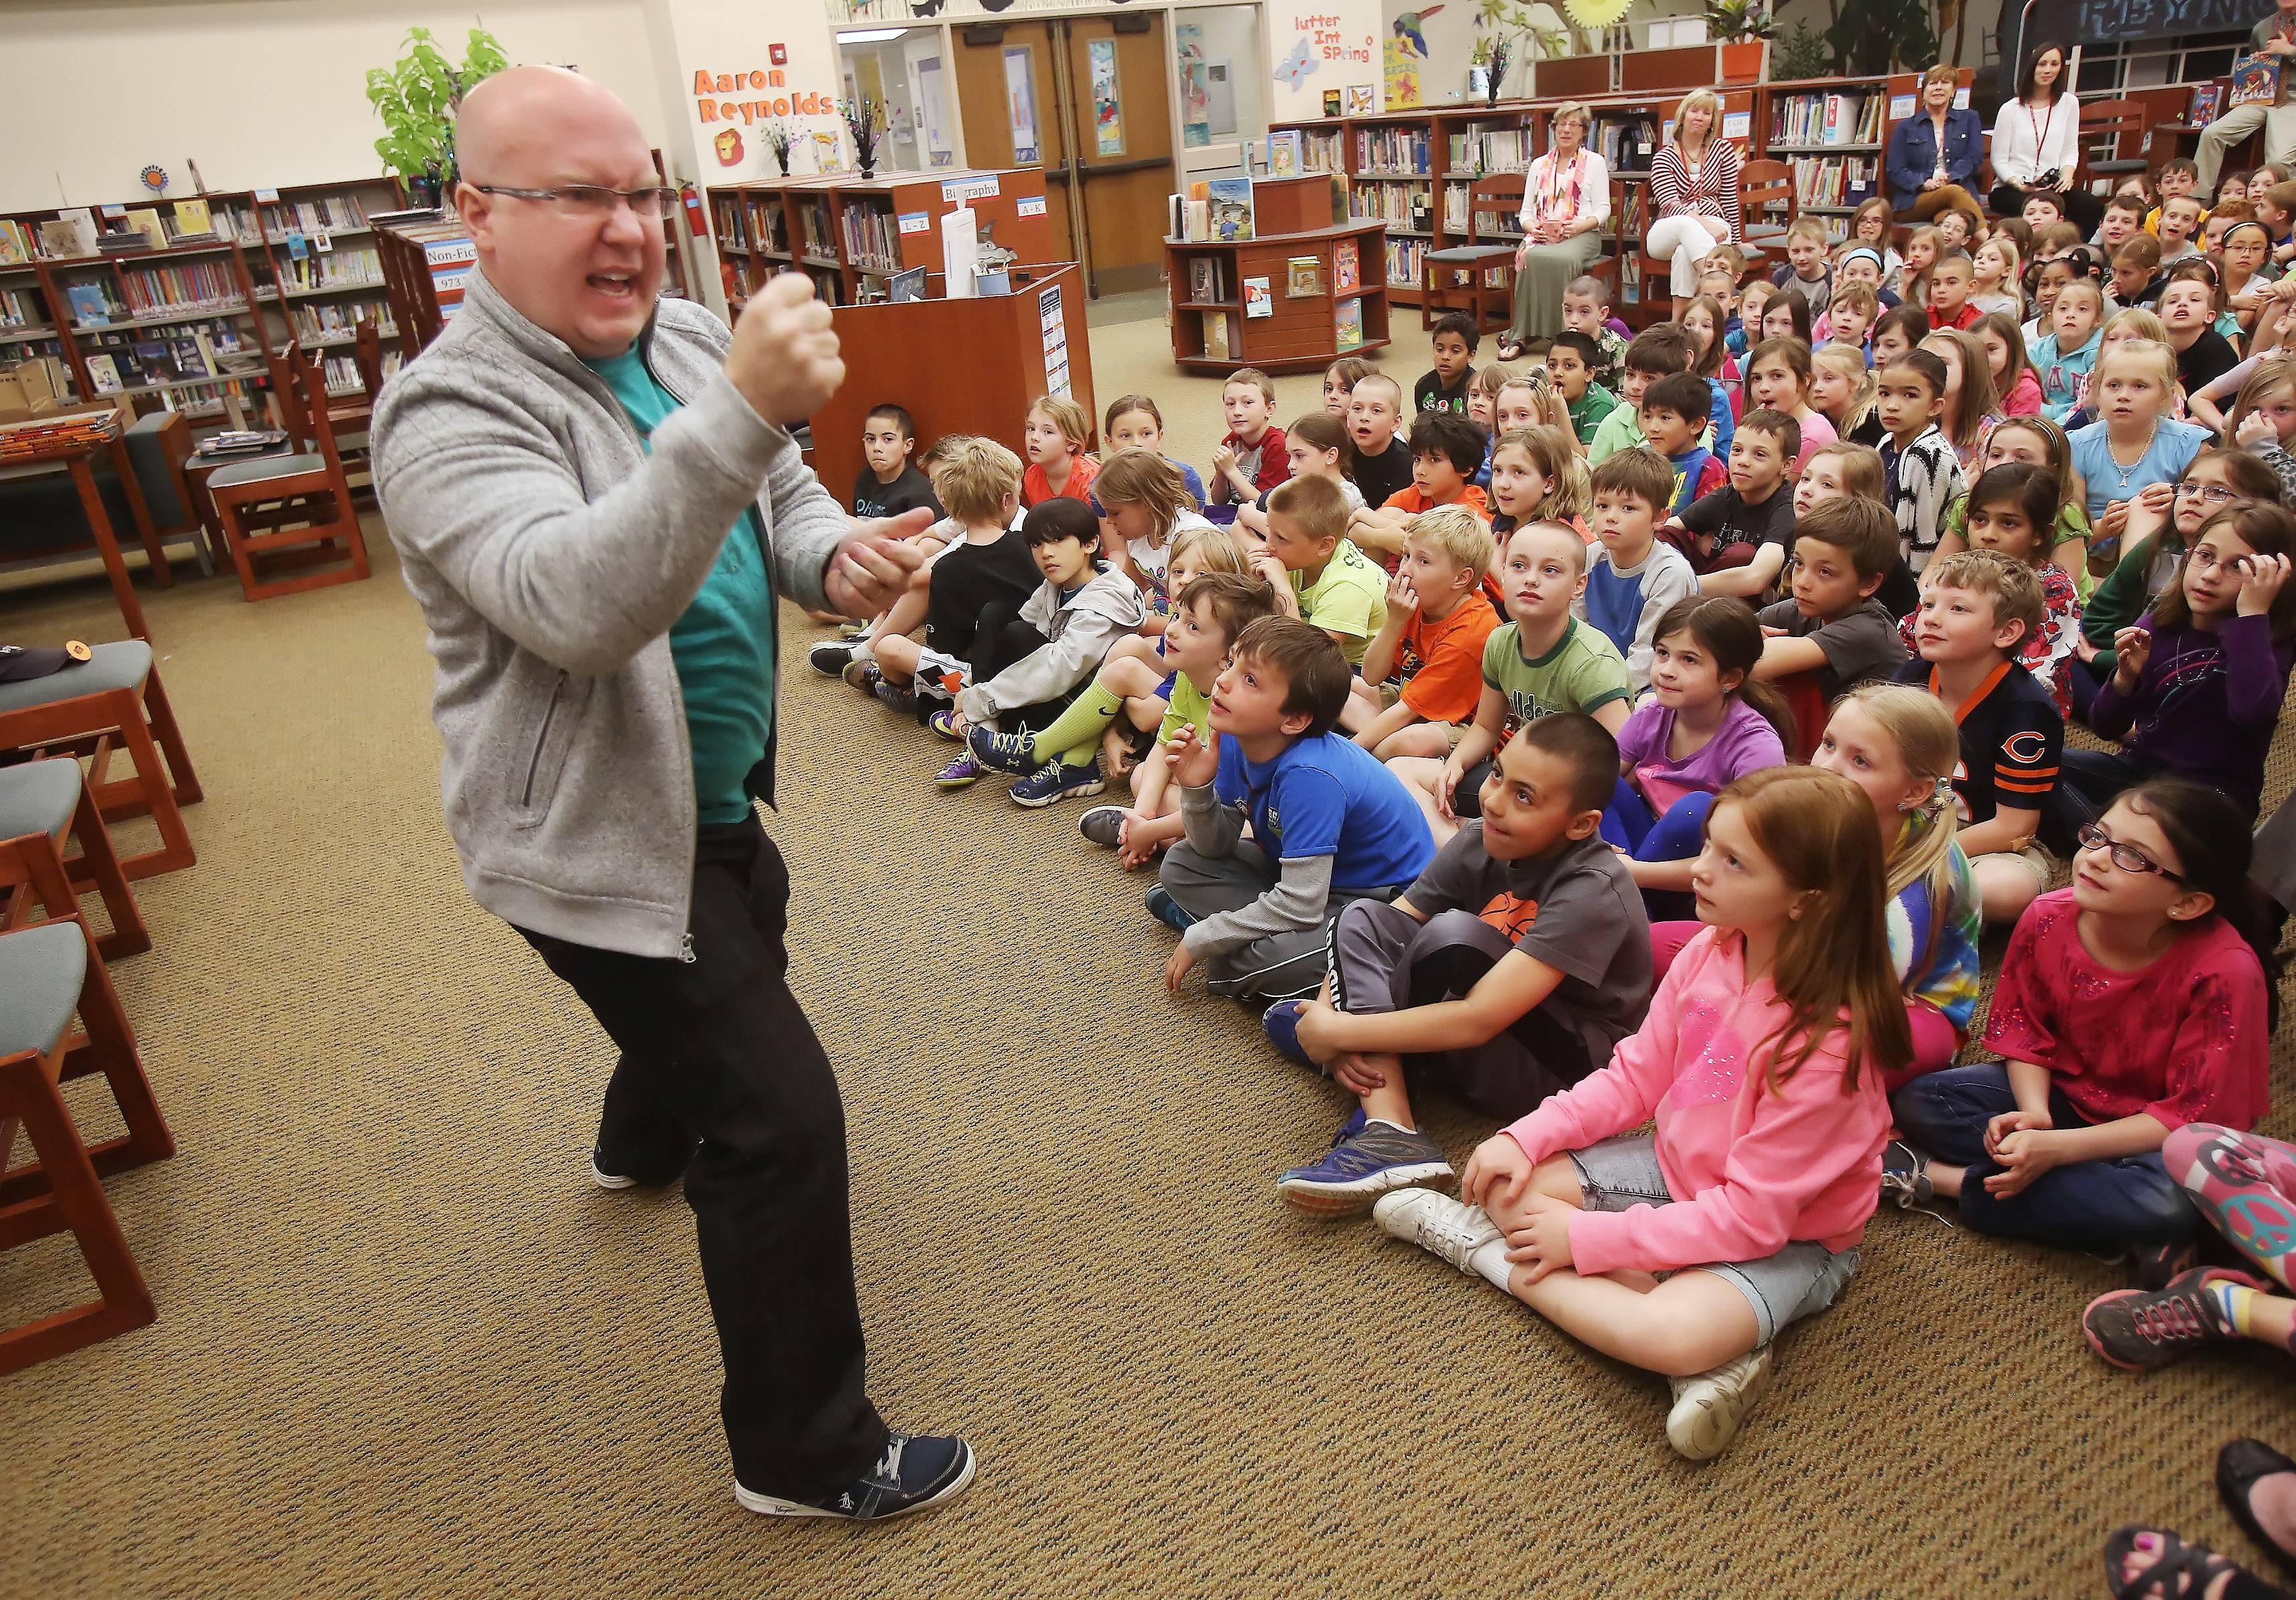 Children's author Aaron Reynolds educates and entertains students Wednesday at Butterfield Elementary School in Libertyville. Reynolds has been on The New York Times best-seller list and won the Caldecott Medal award.